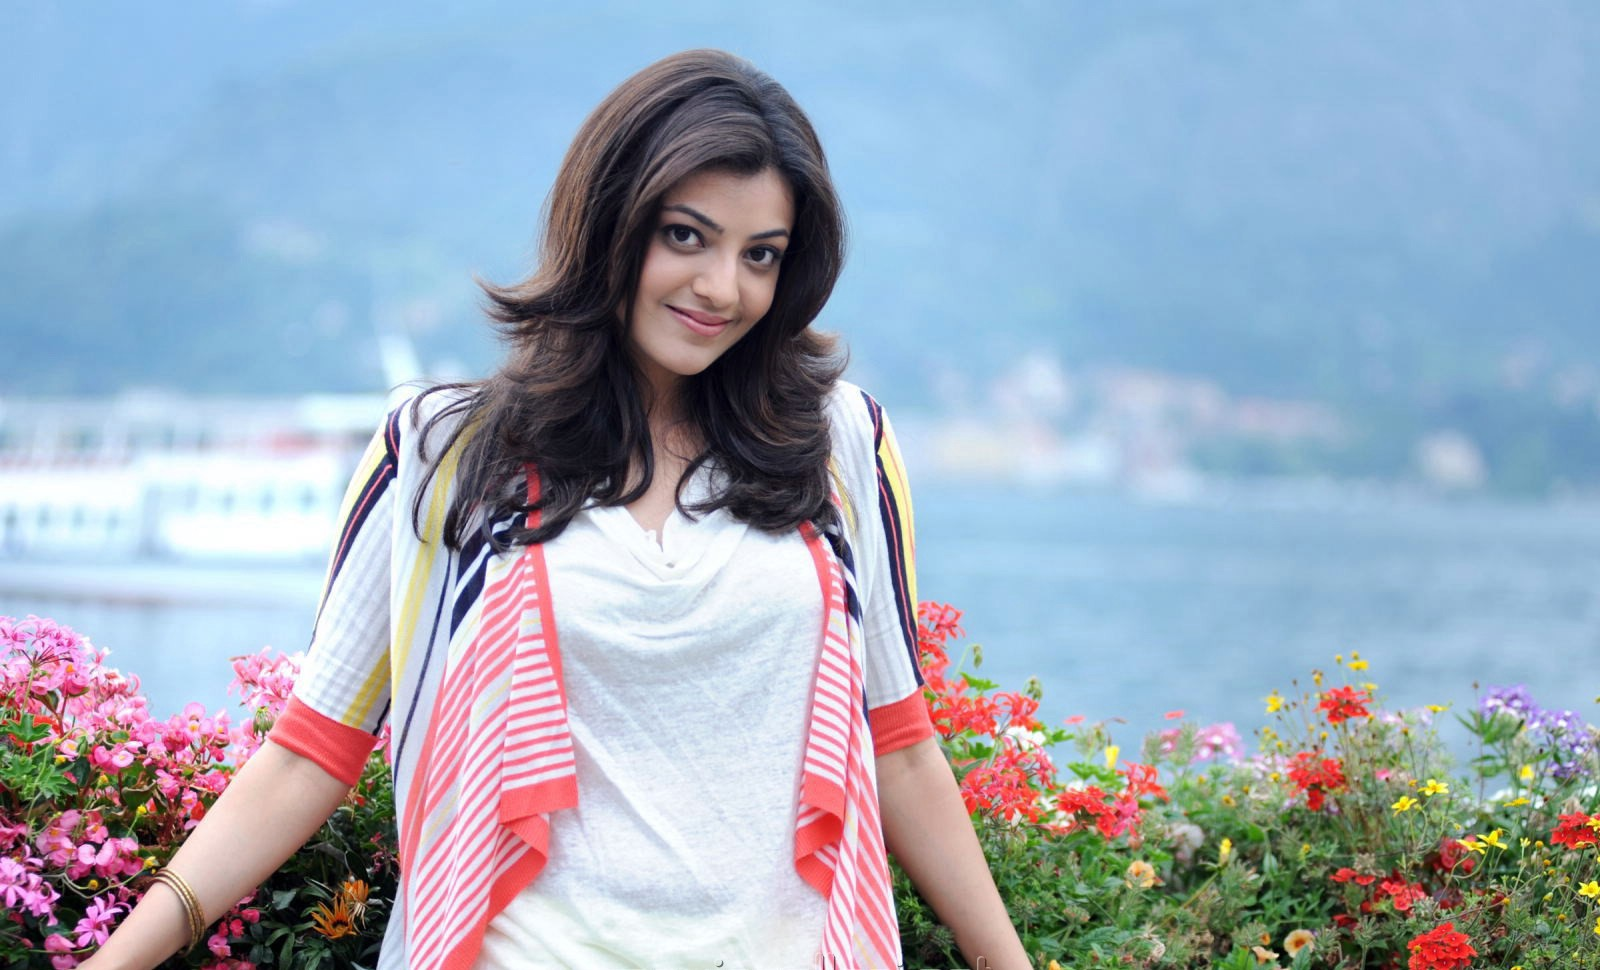 Guitar Wallpaper For Facebook Profile Girl Kajal Agarwal Wallpapers Pictures Images